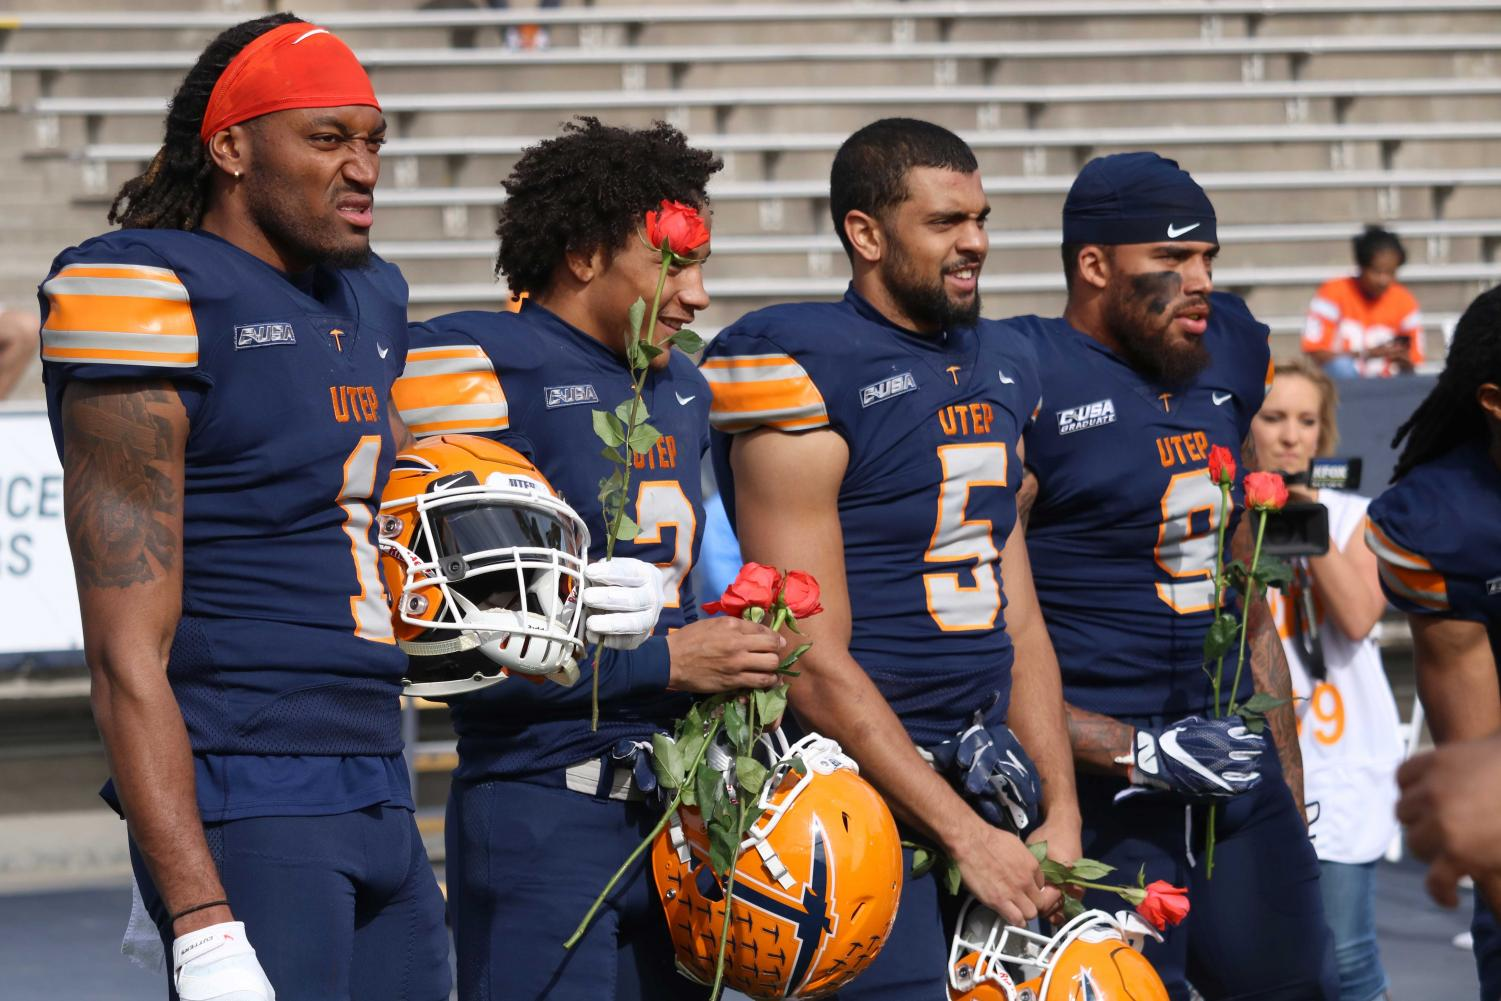 Seniors+players+Nik+Needam%2C+Kalon+Beverly%2C+A.J+Hotchkins+and+Michael+Lewis+receive+roses+before+the+season+finale+on++Nov.+24%2C+2018.